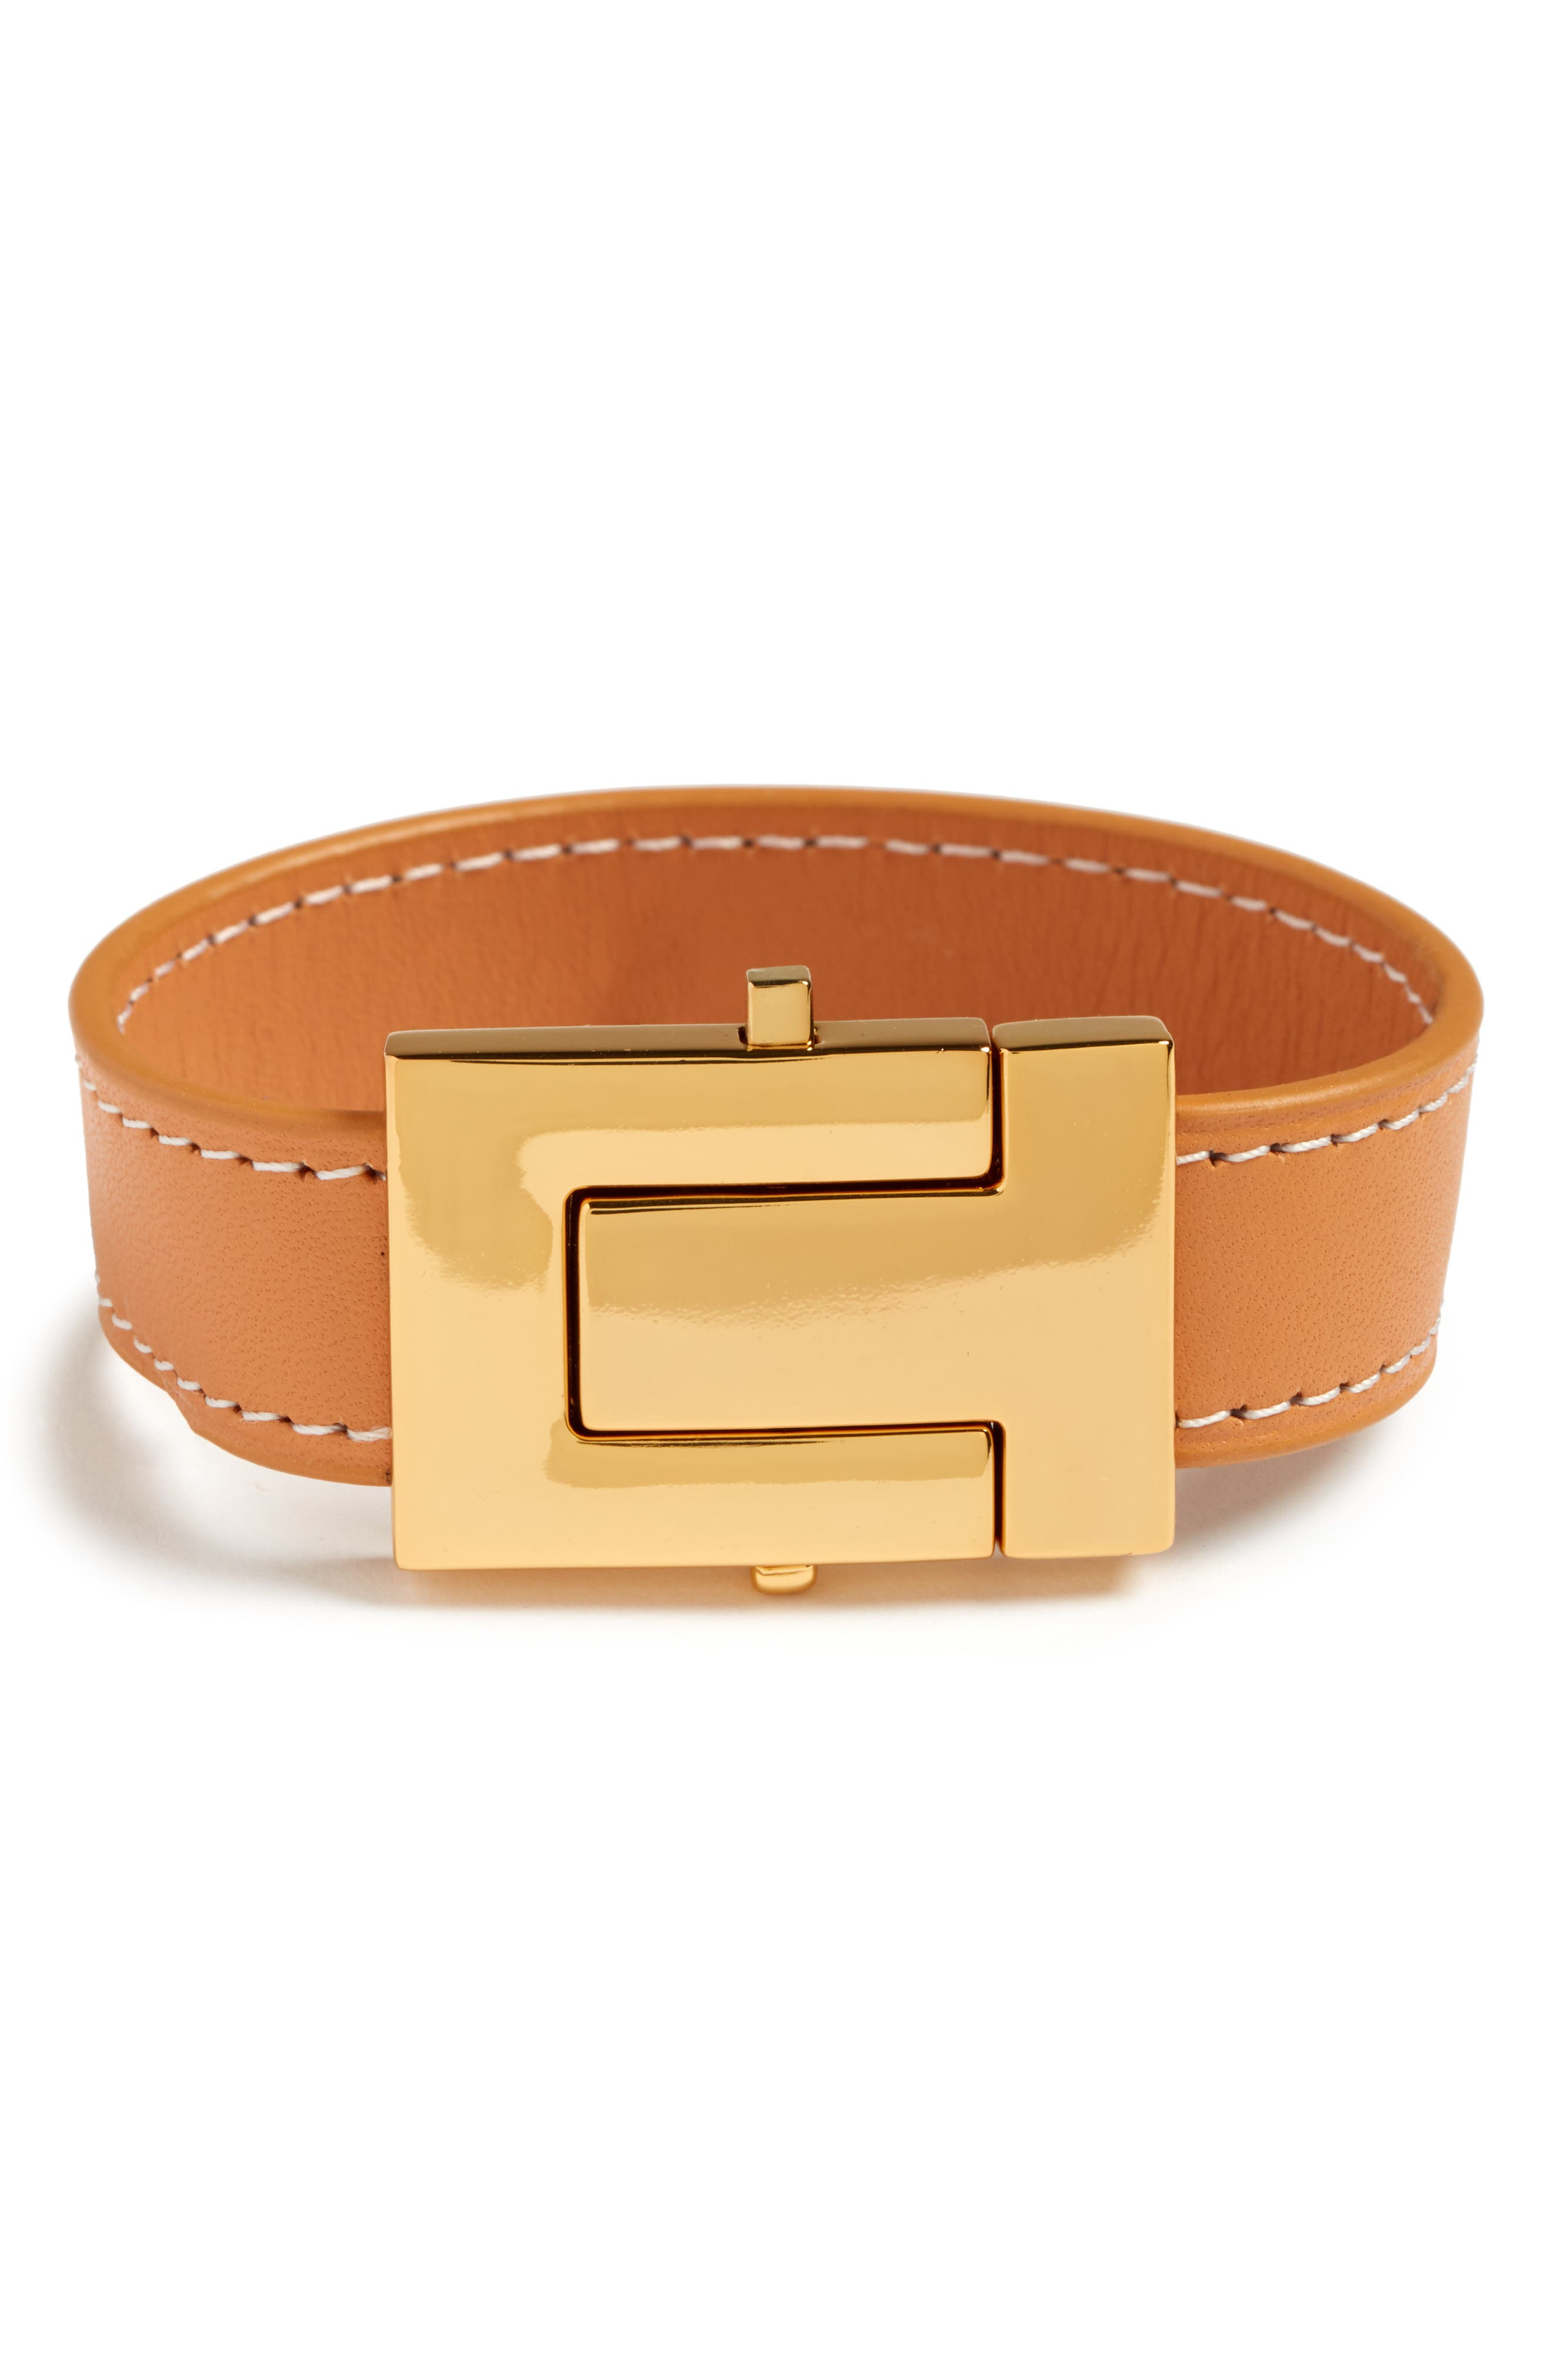 TORY BURCH,                             Leather Bracelet,                             Main thumbnail 1, color,                             VACHETTA/ TORY GOLD